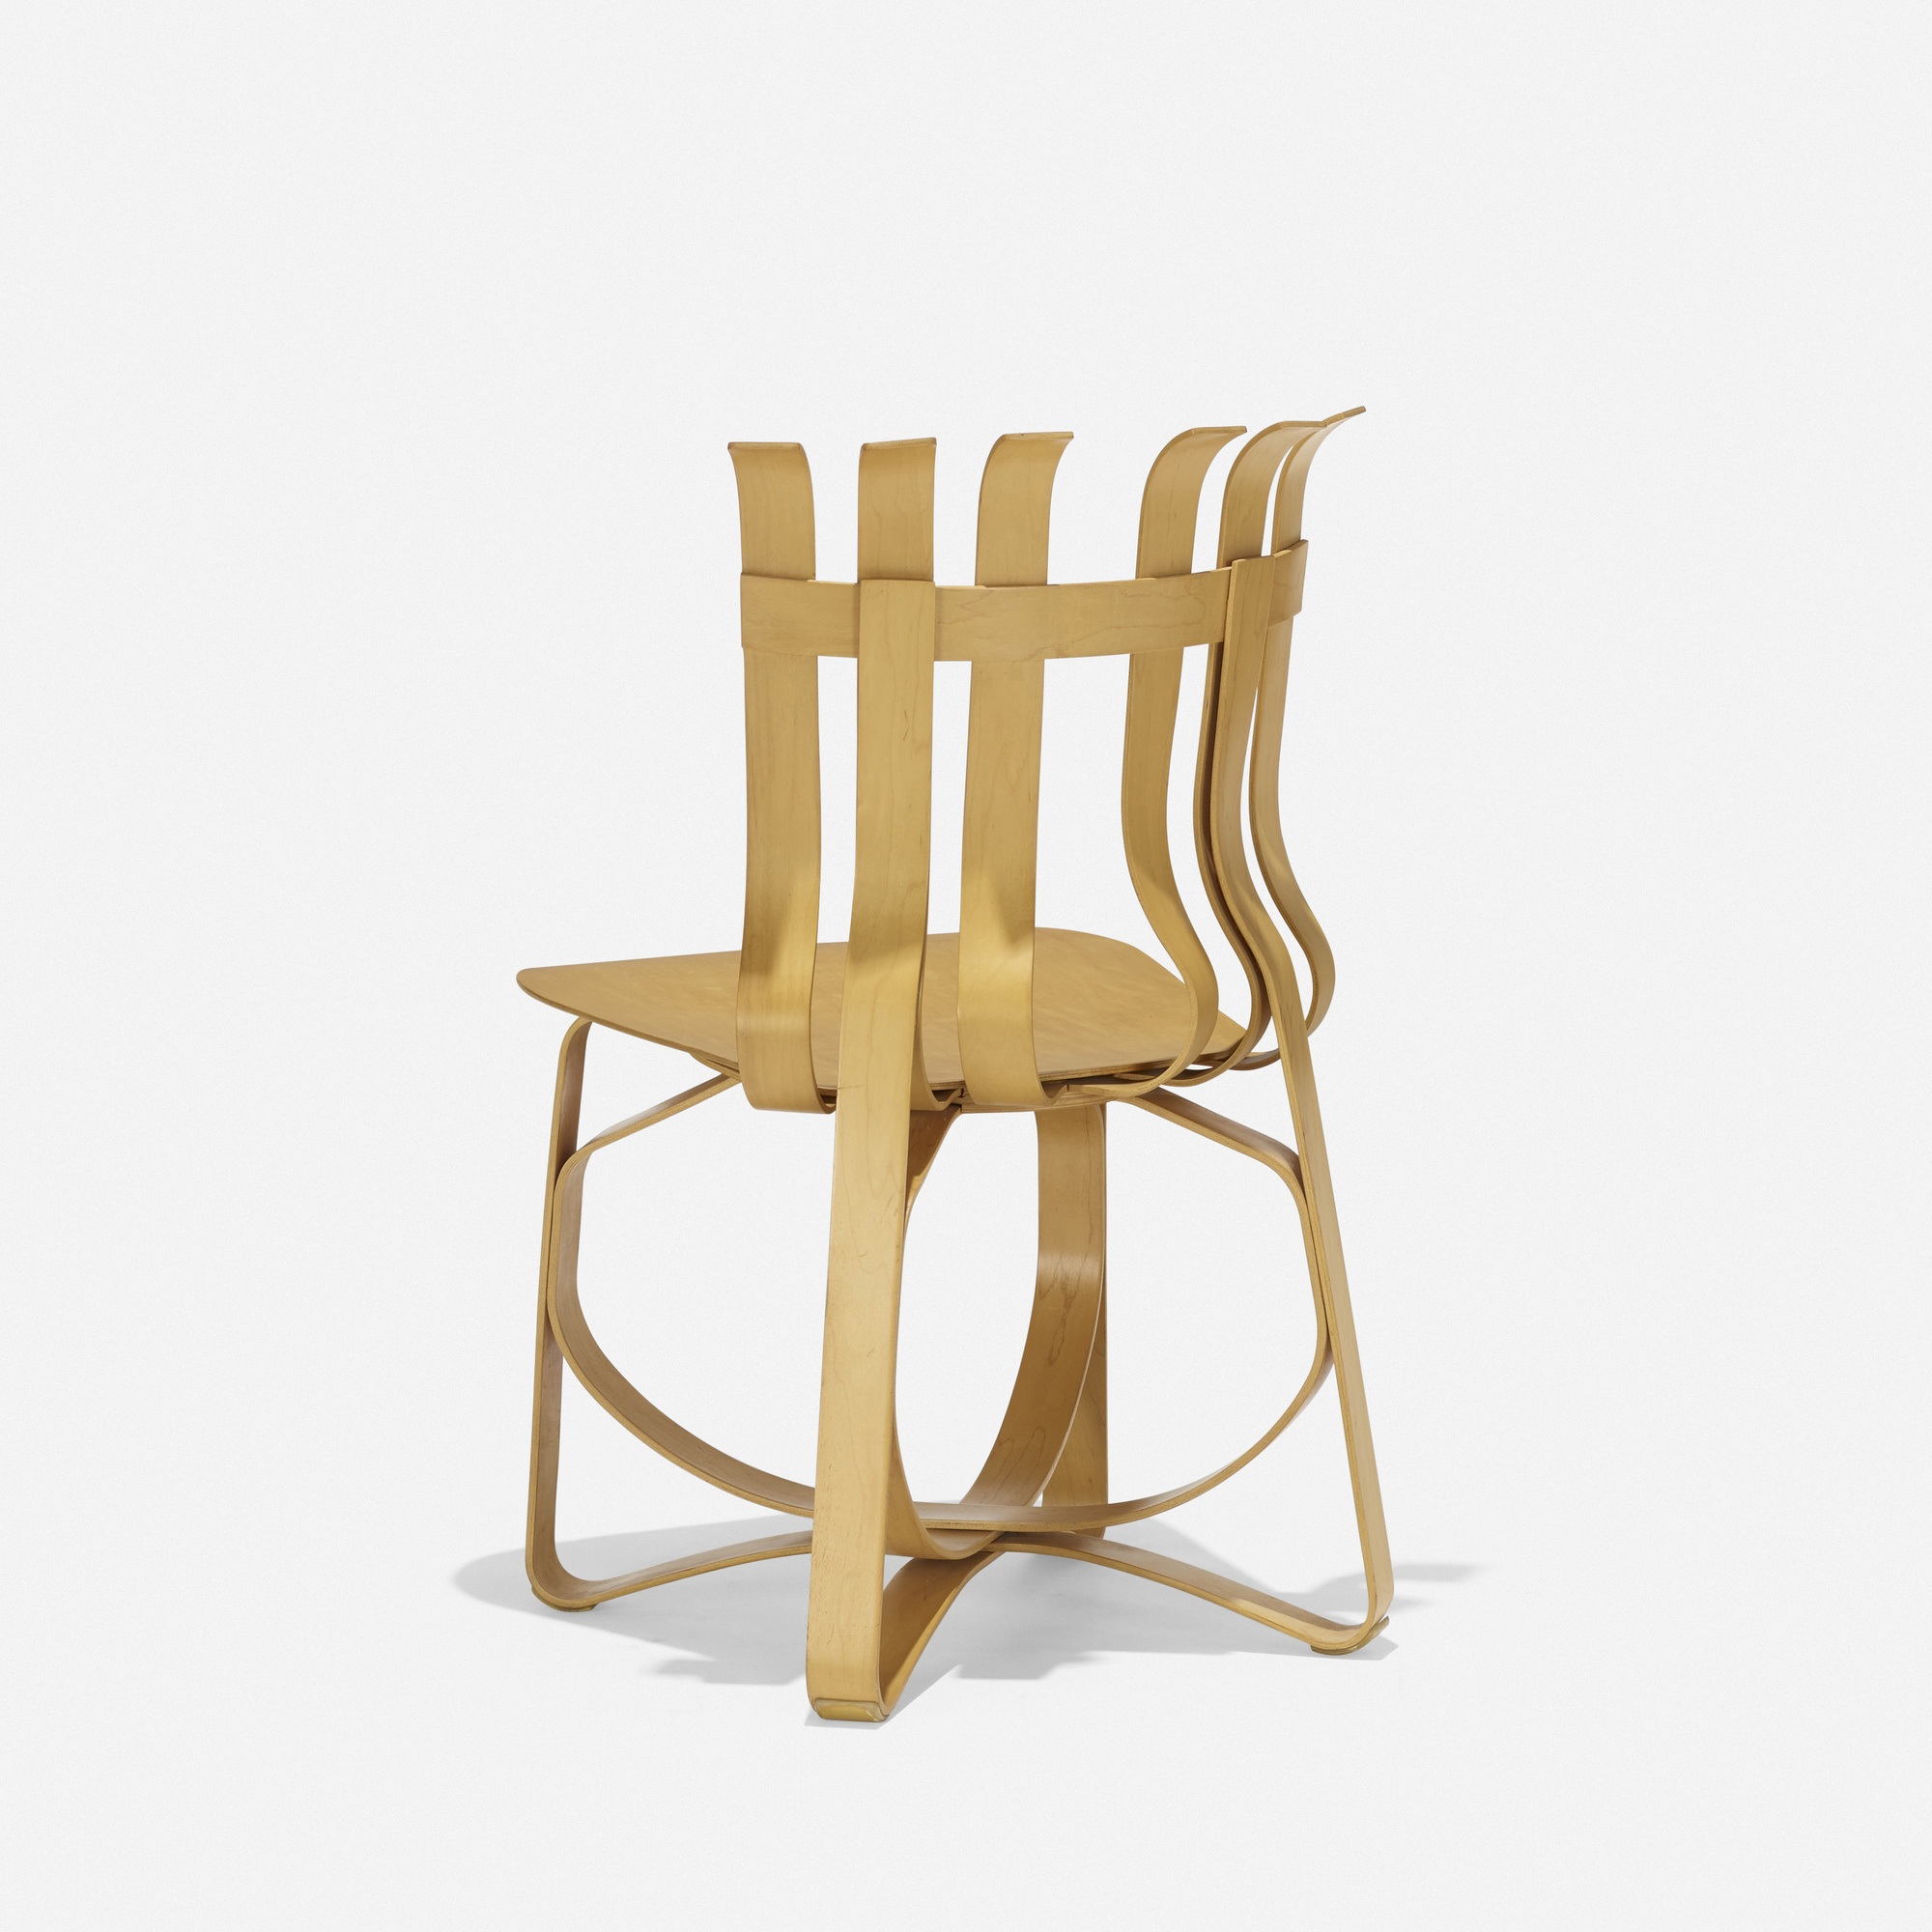 chair design museum hiring chairs cape town 116 frank gehry hat trick